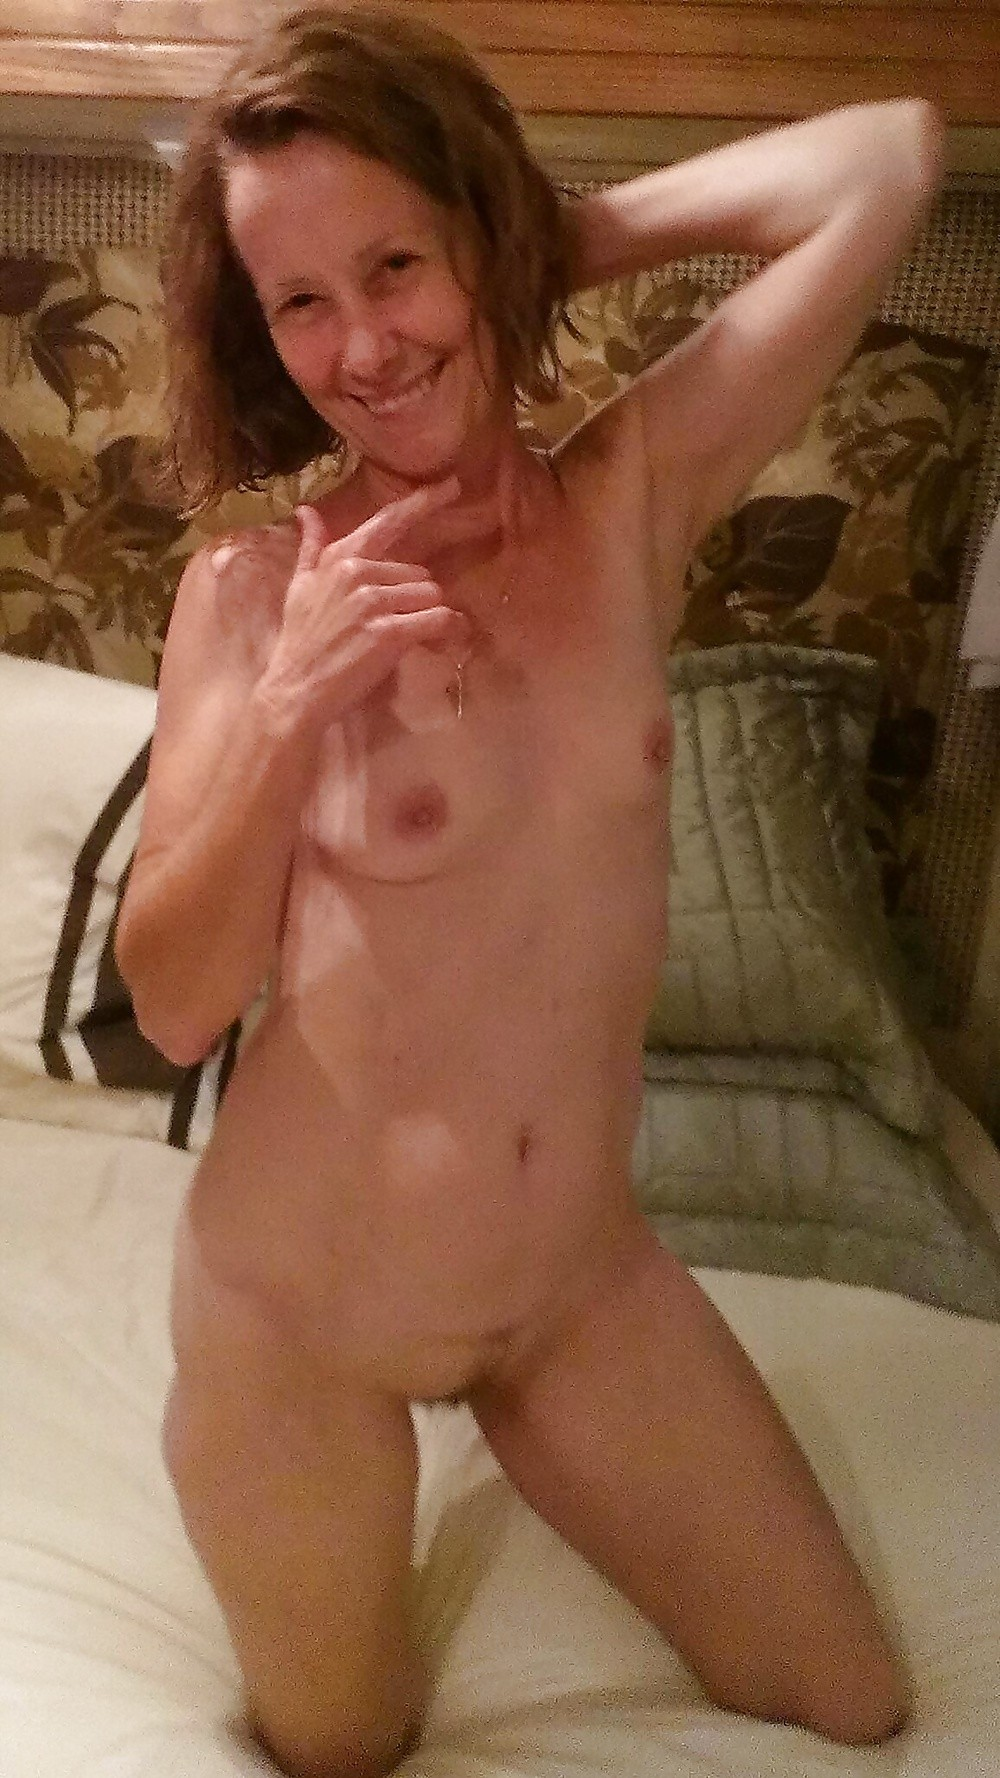 Hot live webcam show from shygirl with bigtoy 3